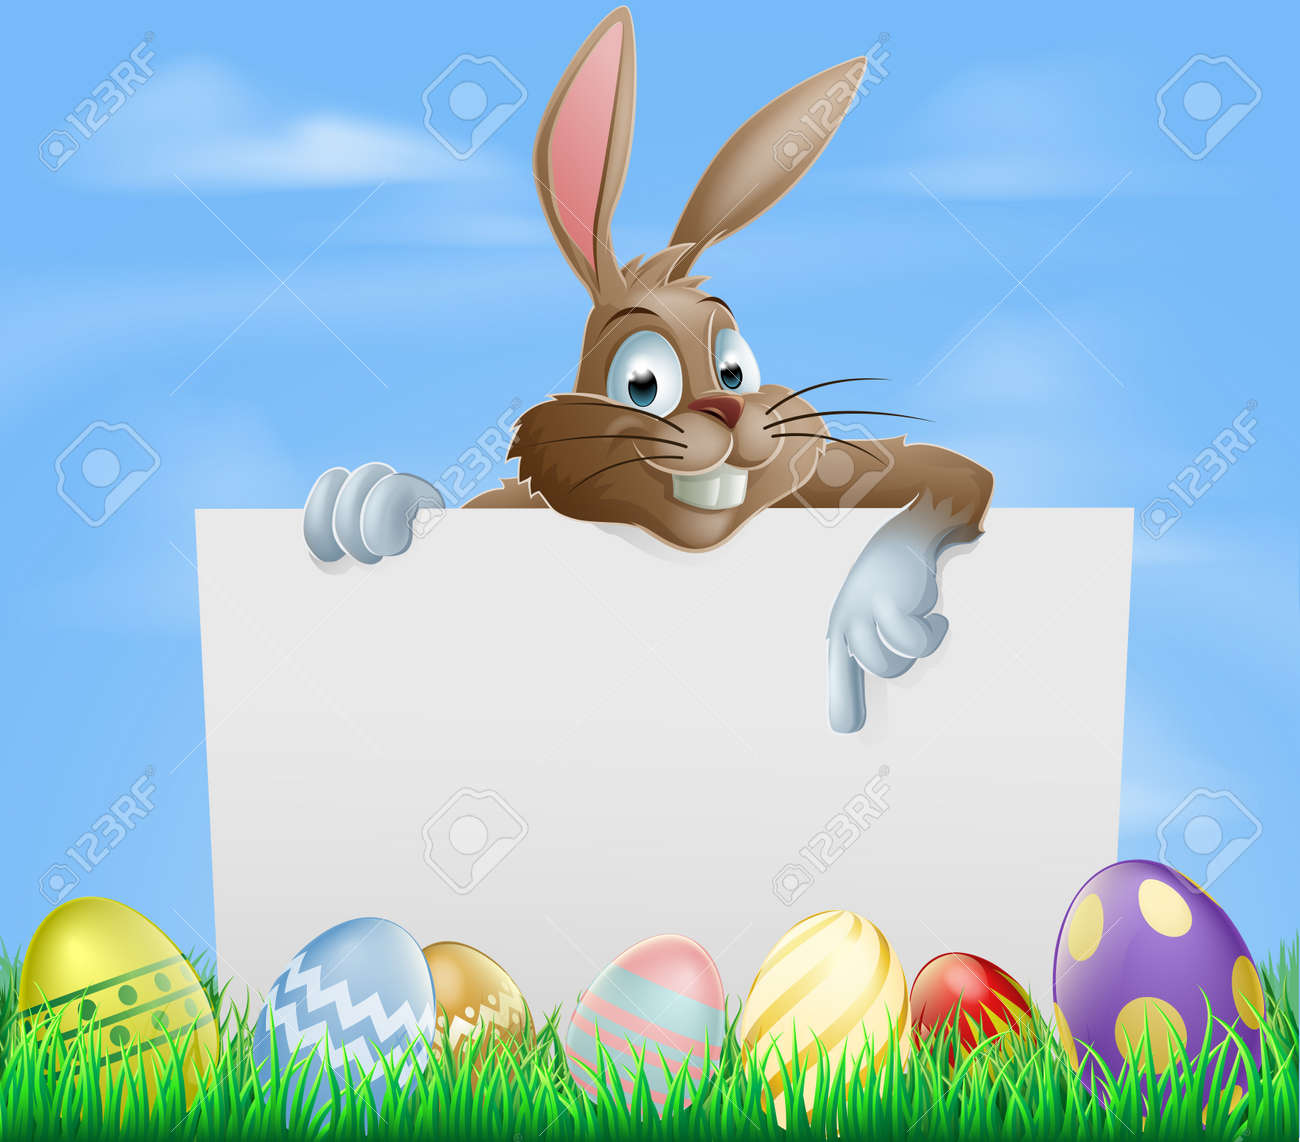 Easter bunny pointing at blank sign with painted chocolate Easter eggs in green field Stock Vector - 17682741